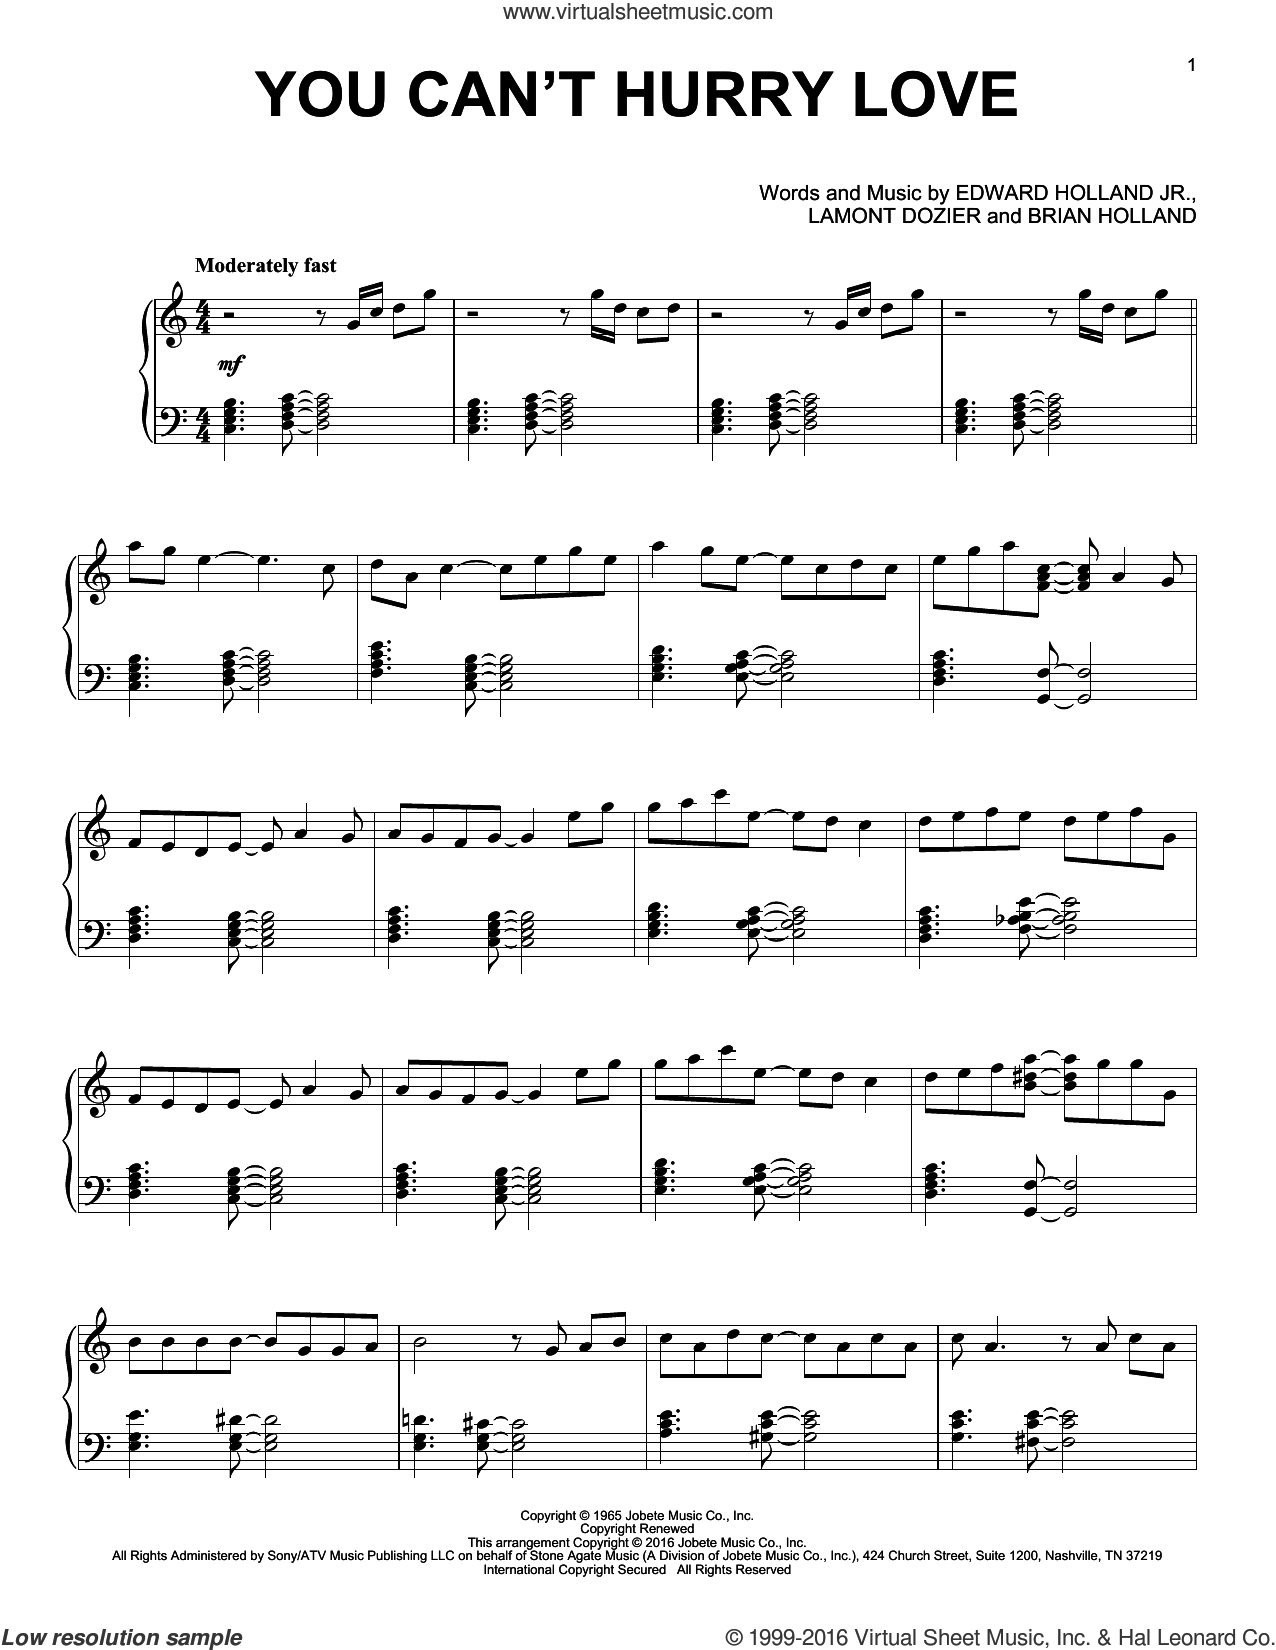 You Can't Hurry Love sheet music for piano solo by Brian Holland, Phil Collins, The Supremes, Edward Holland Jr. and Lamont Dozier, intermediate skill level